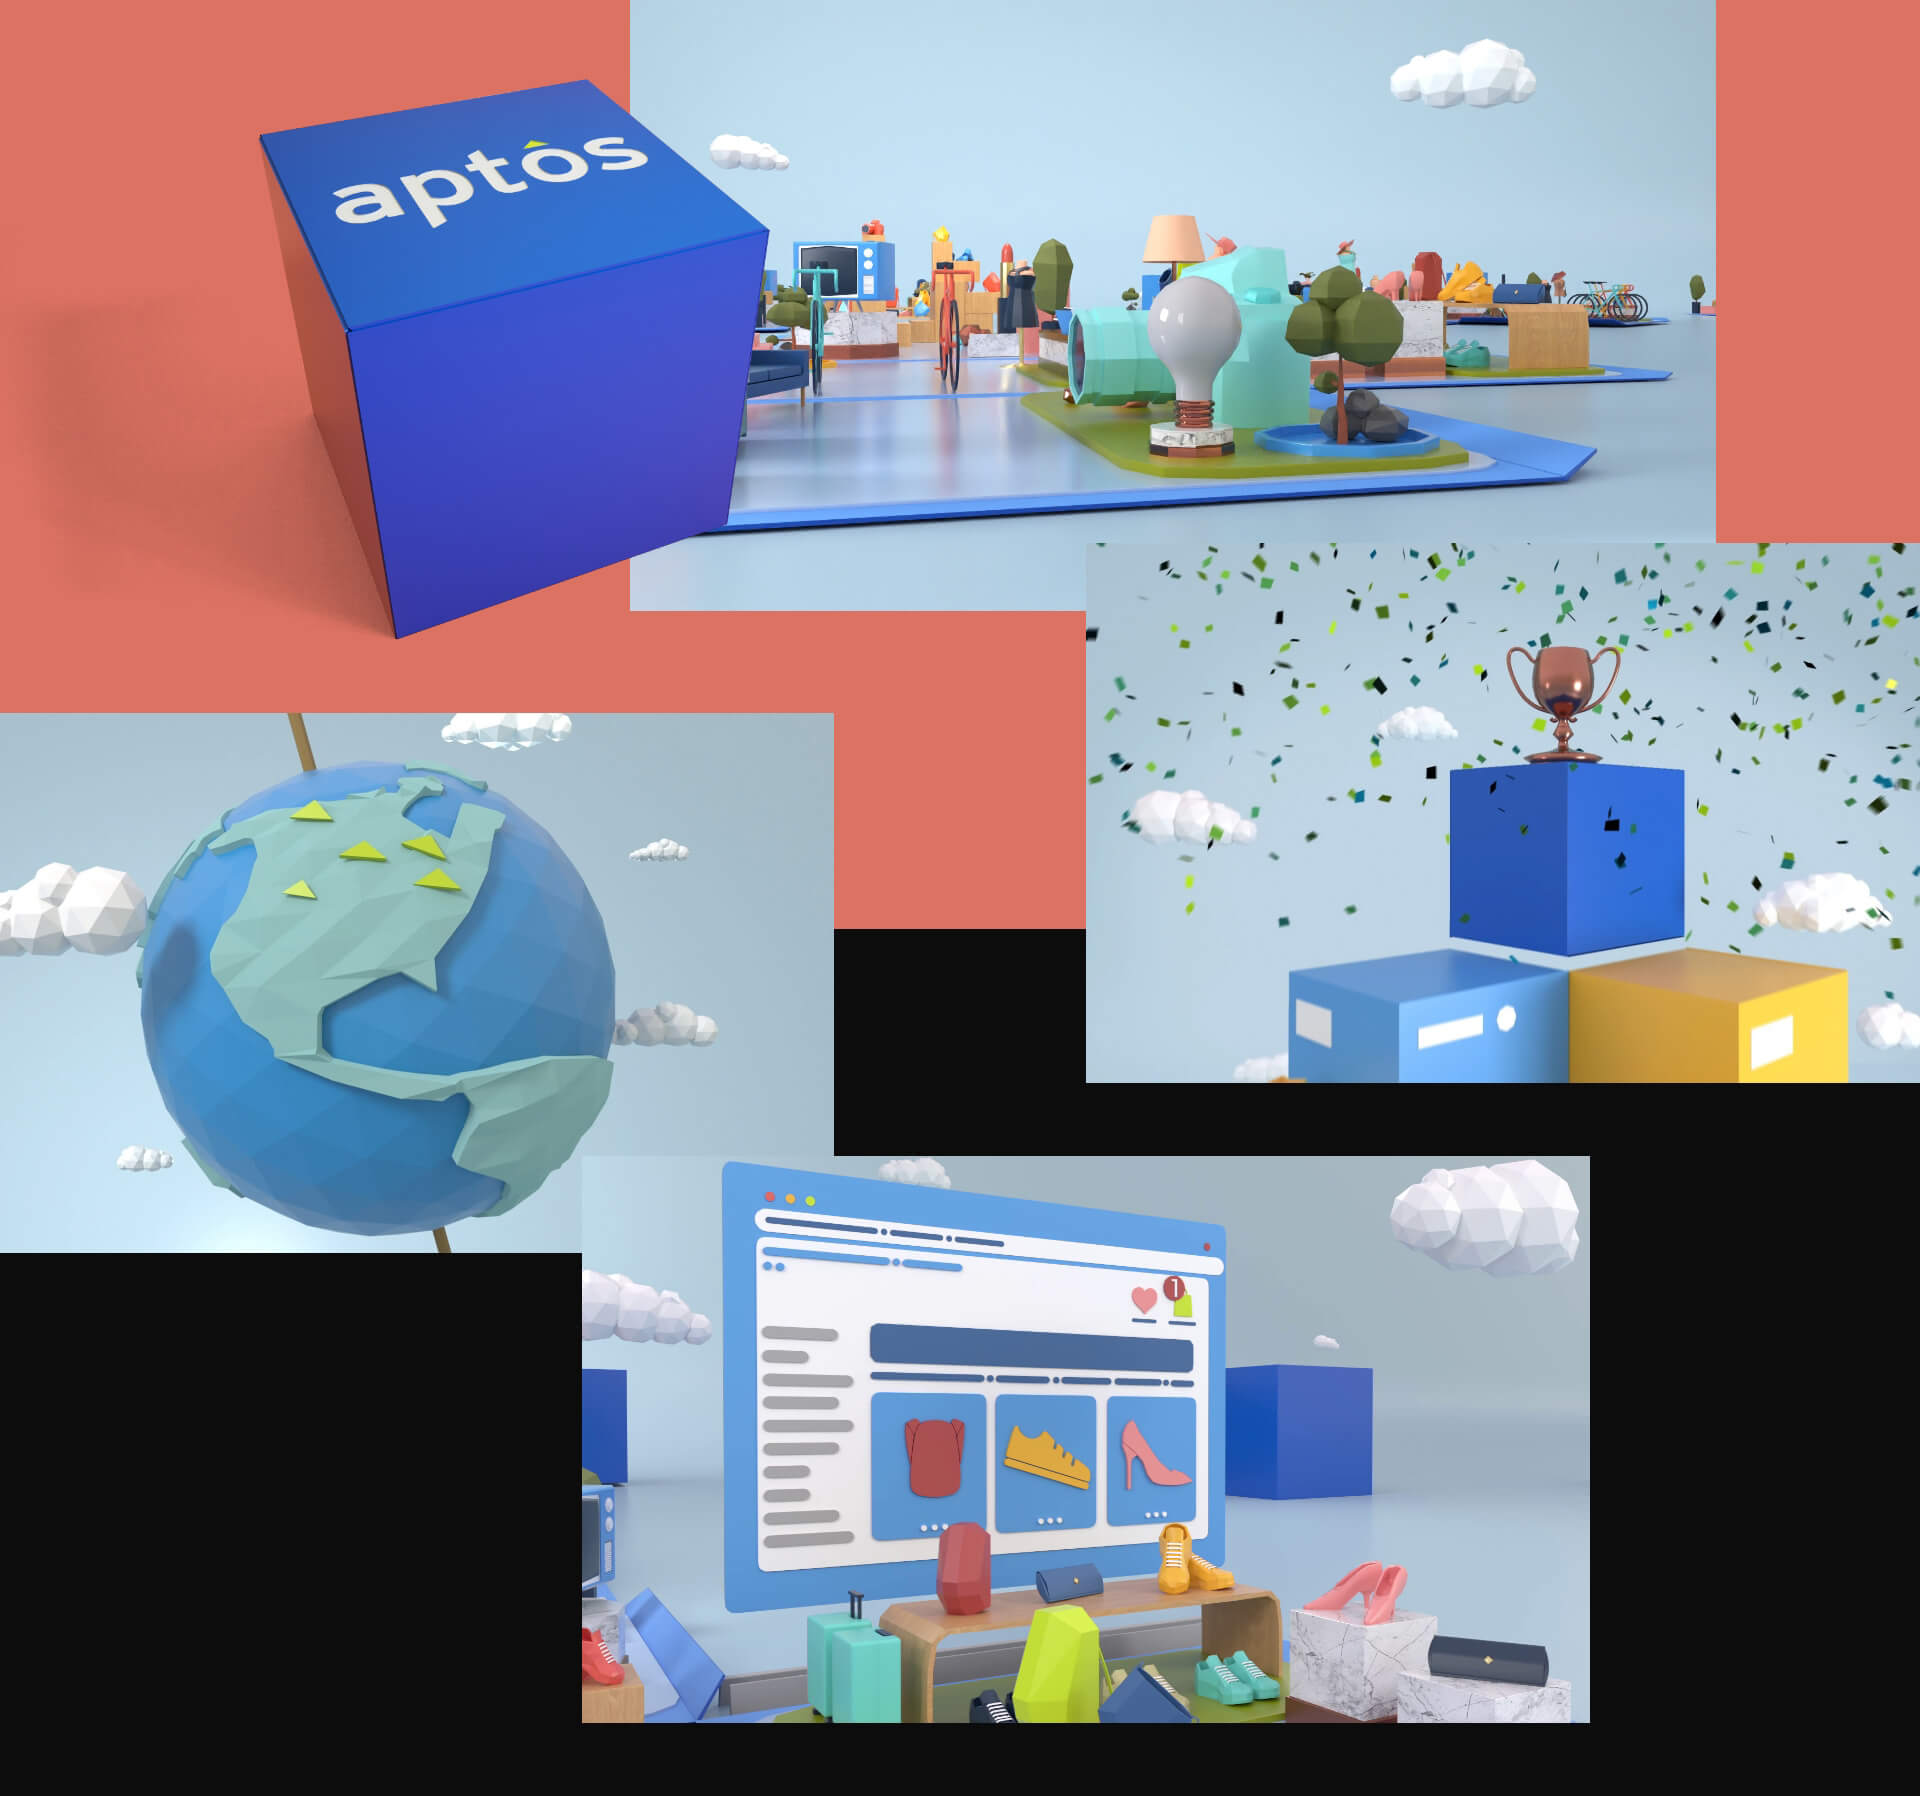 Aptos Corporate Overview Video Highlights